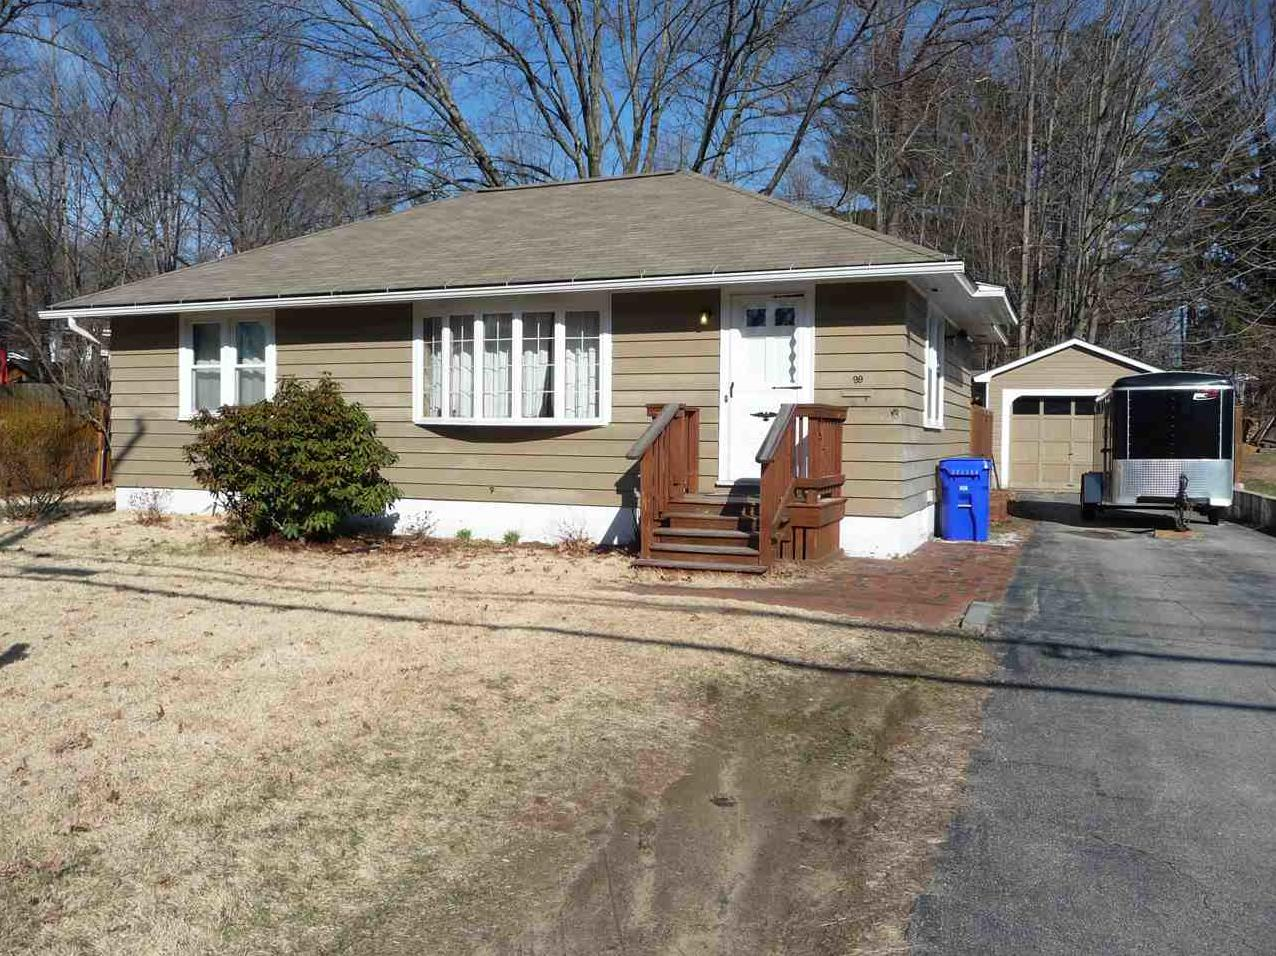 Photo of 99 Donald Street Manchester, NH 03102